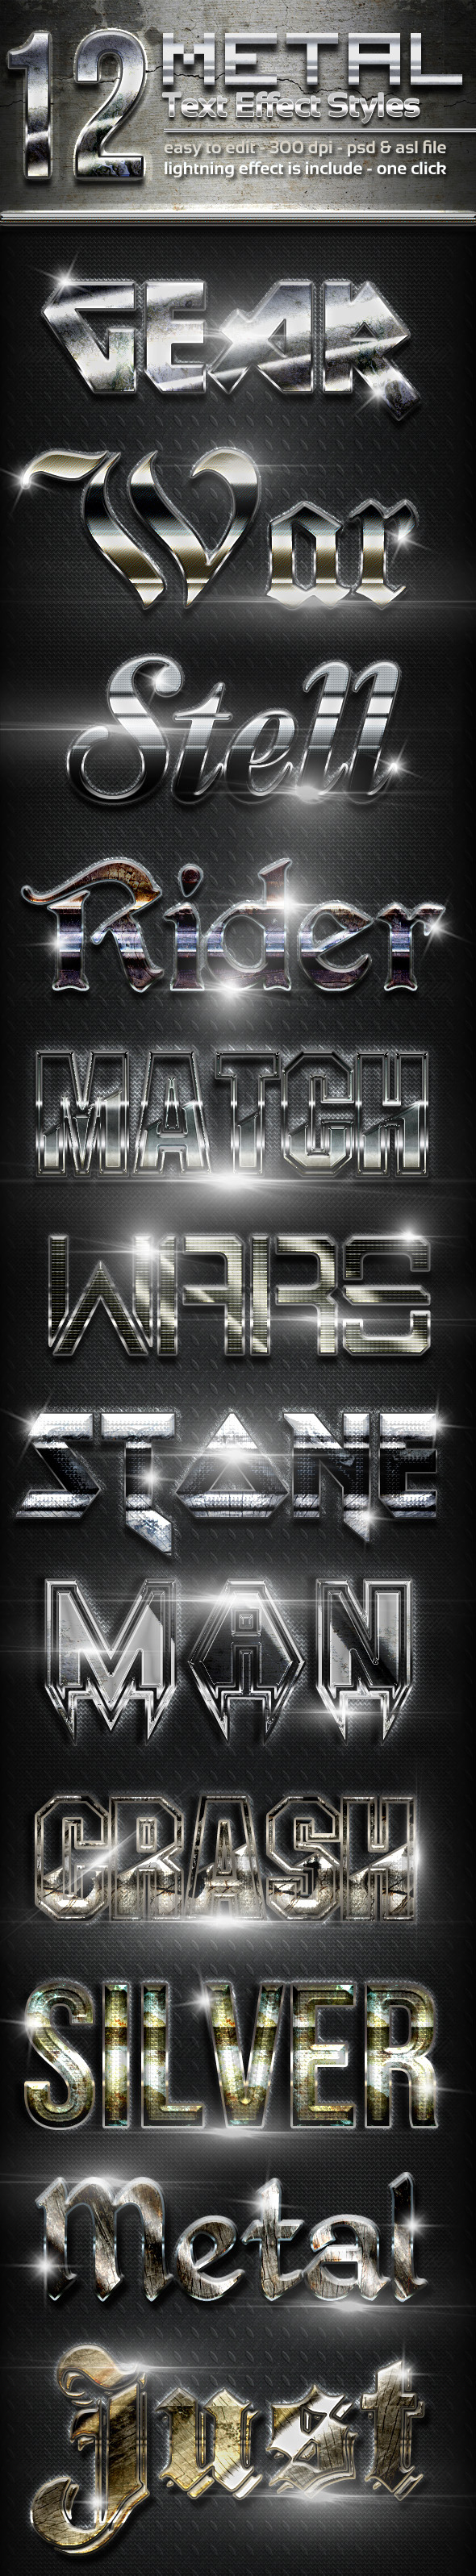 GraphicRiver 12 Metal Text Effect Styles Vol 2 11452083